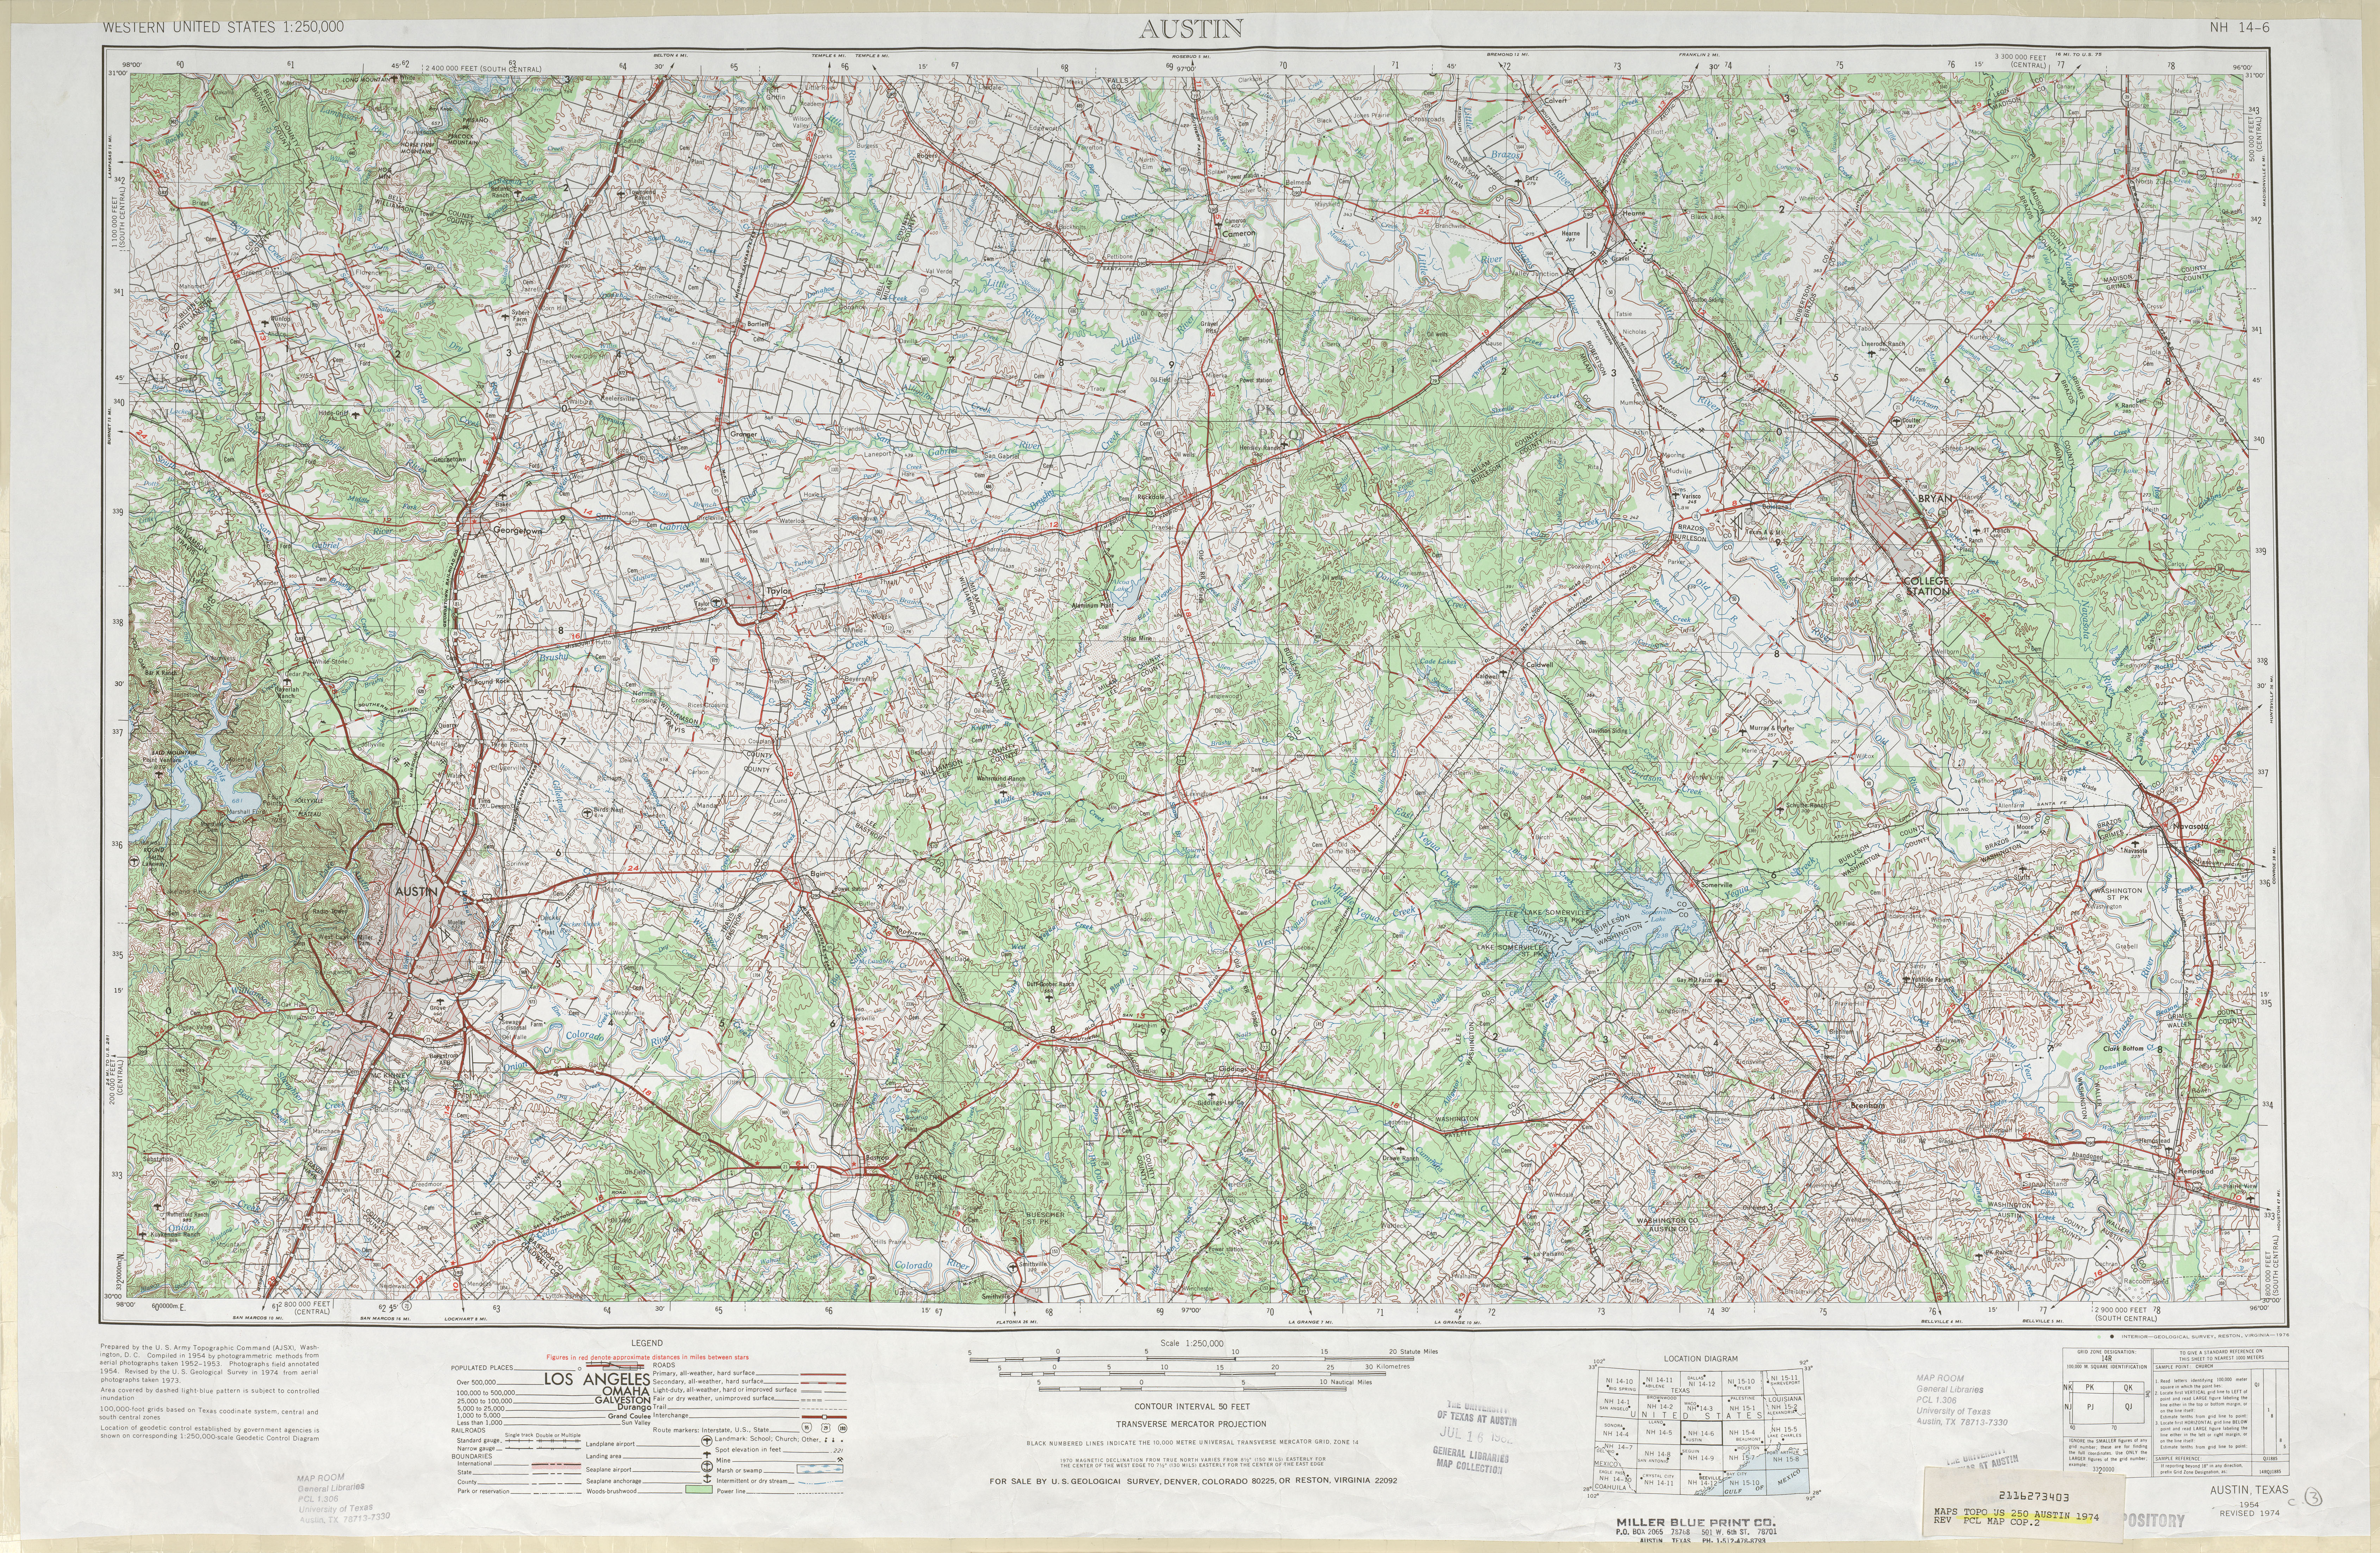 Austin Texas Topographic Maps PerryCastañeda Map Collection - Us topographic map elevations